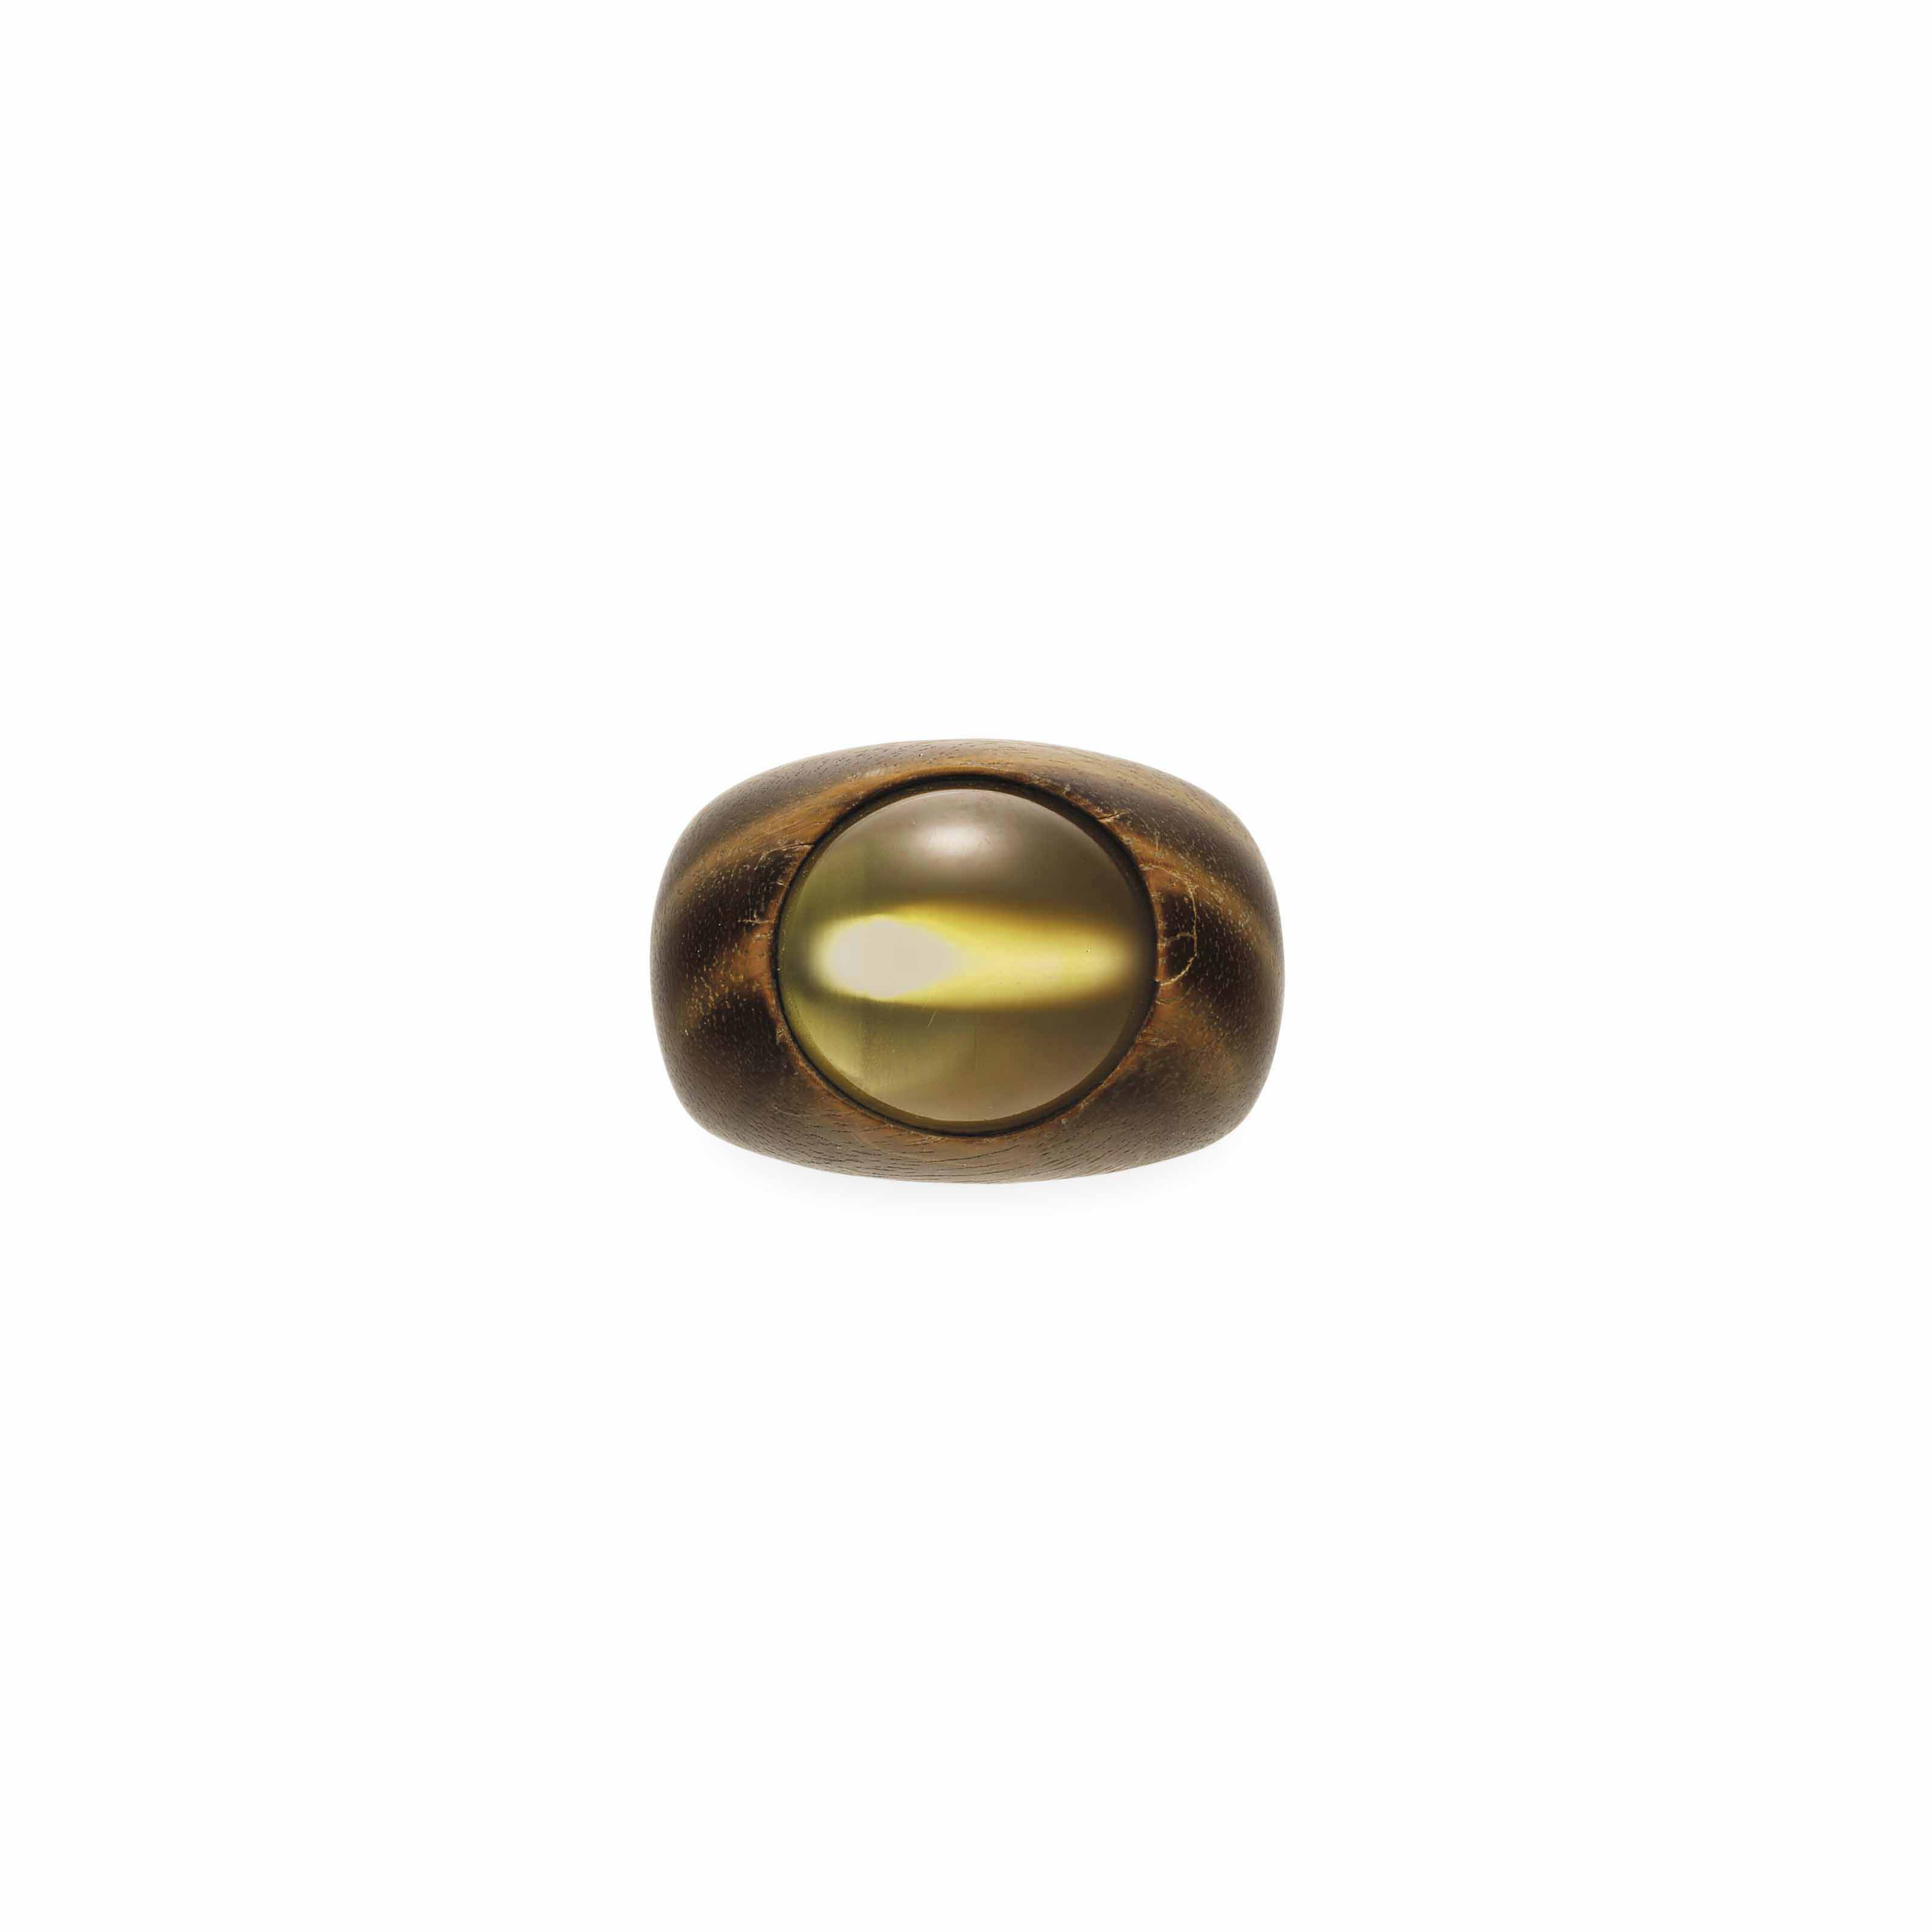 A CAT'S EYE CHRYSOBERYL, WOOD AND GOLD RING, BY HEMMERLE